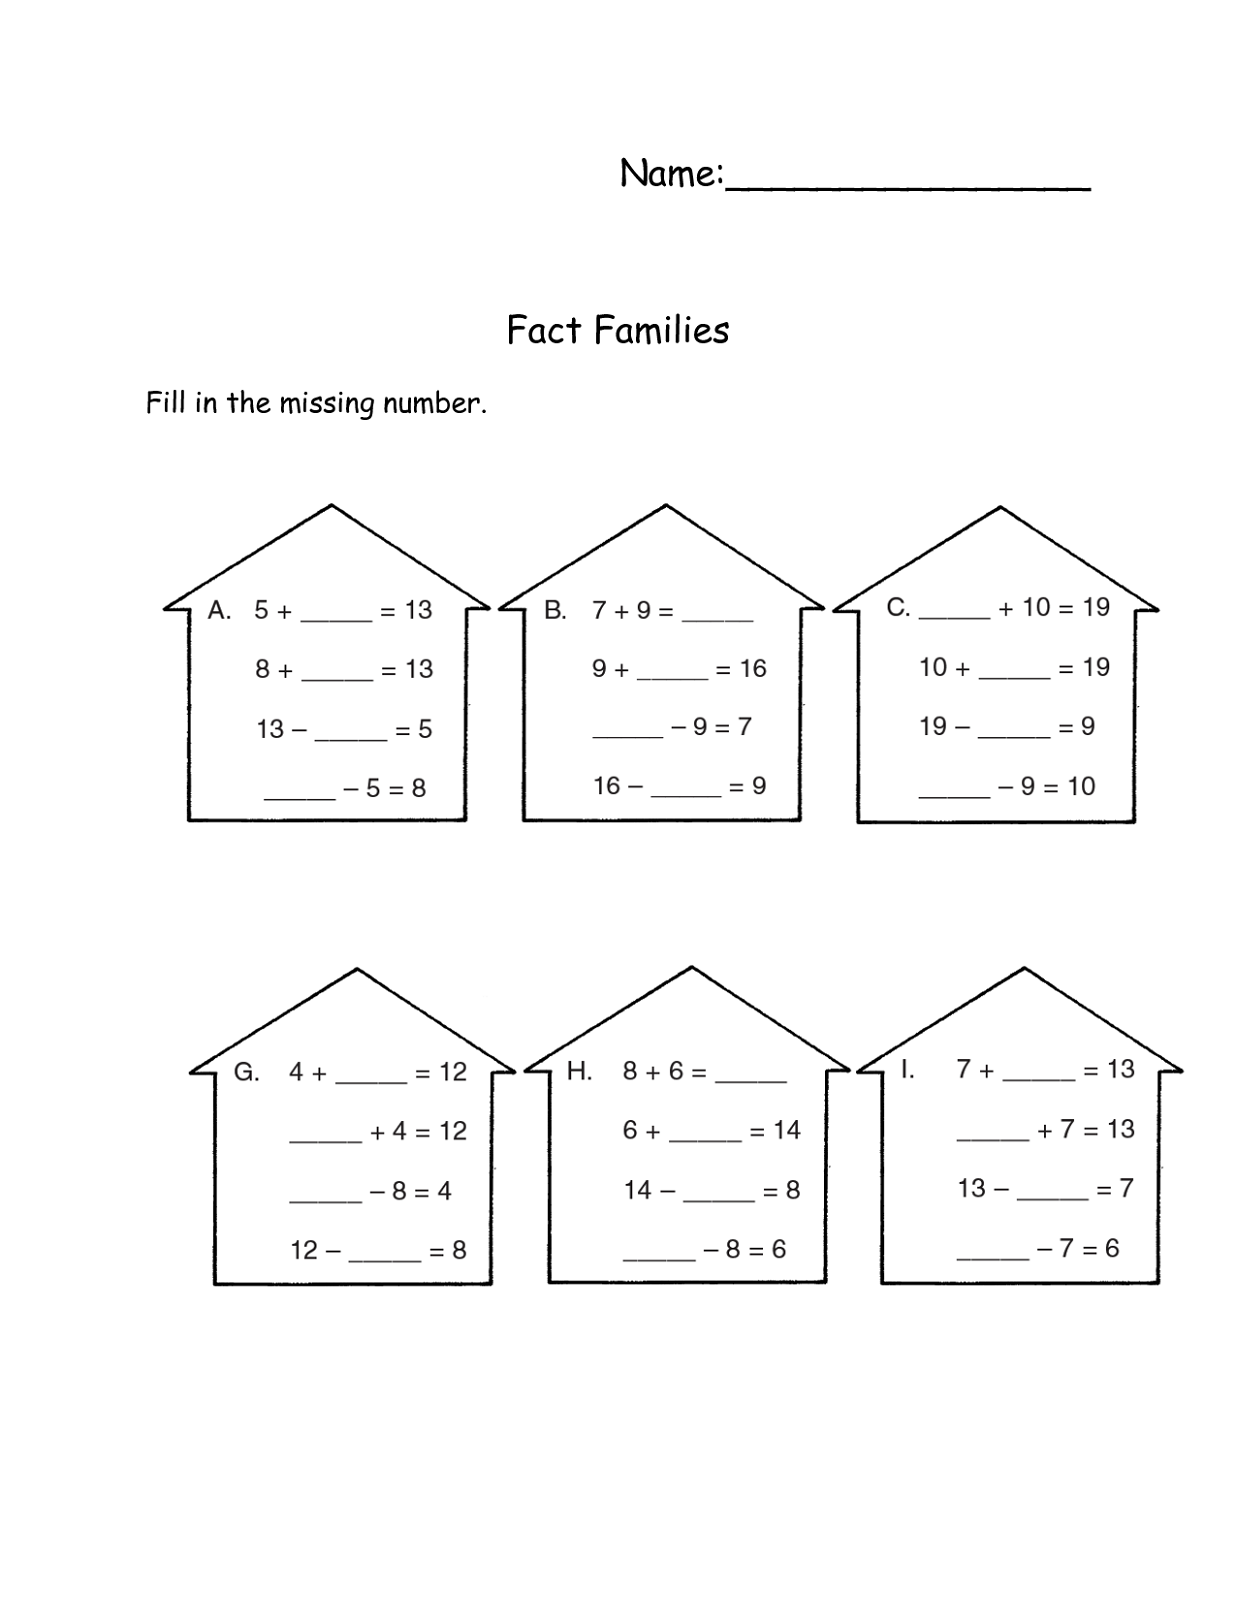 fact-family-worksheet-missing